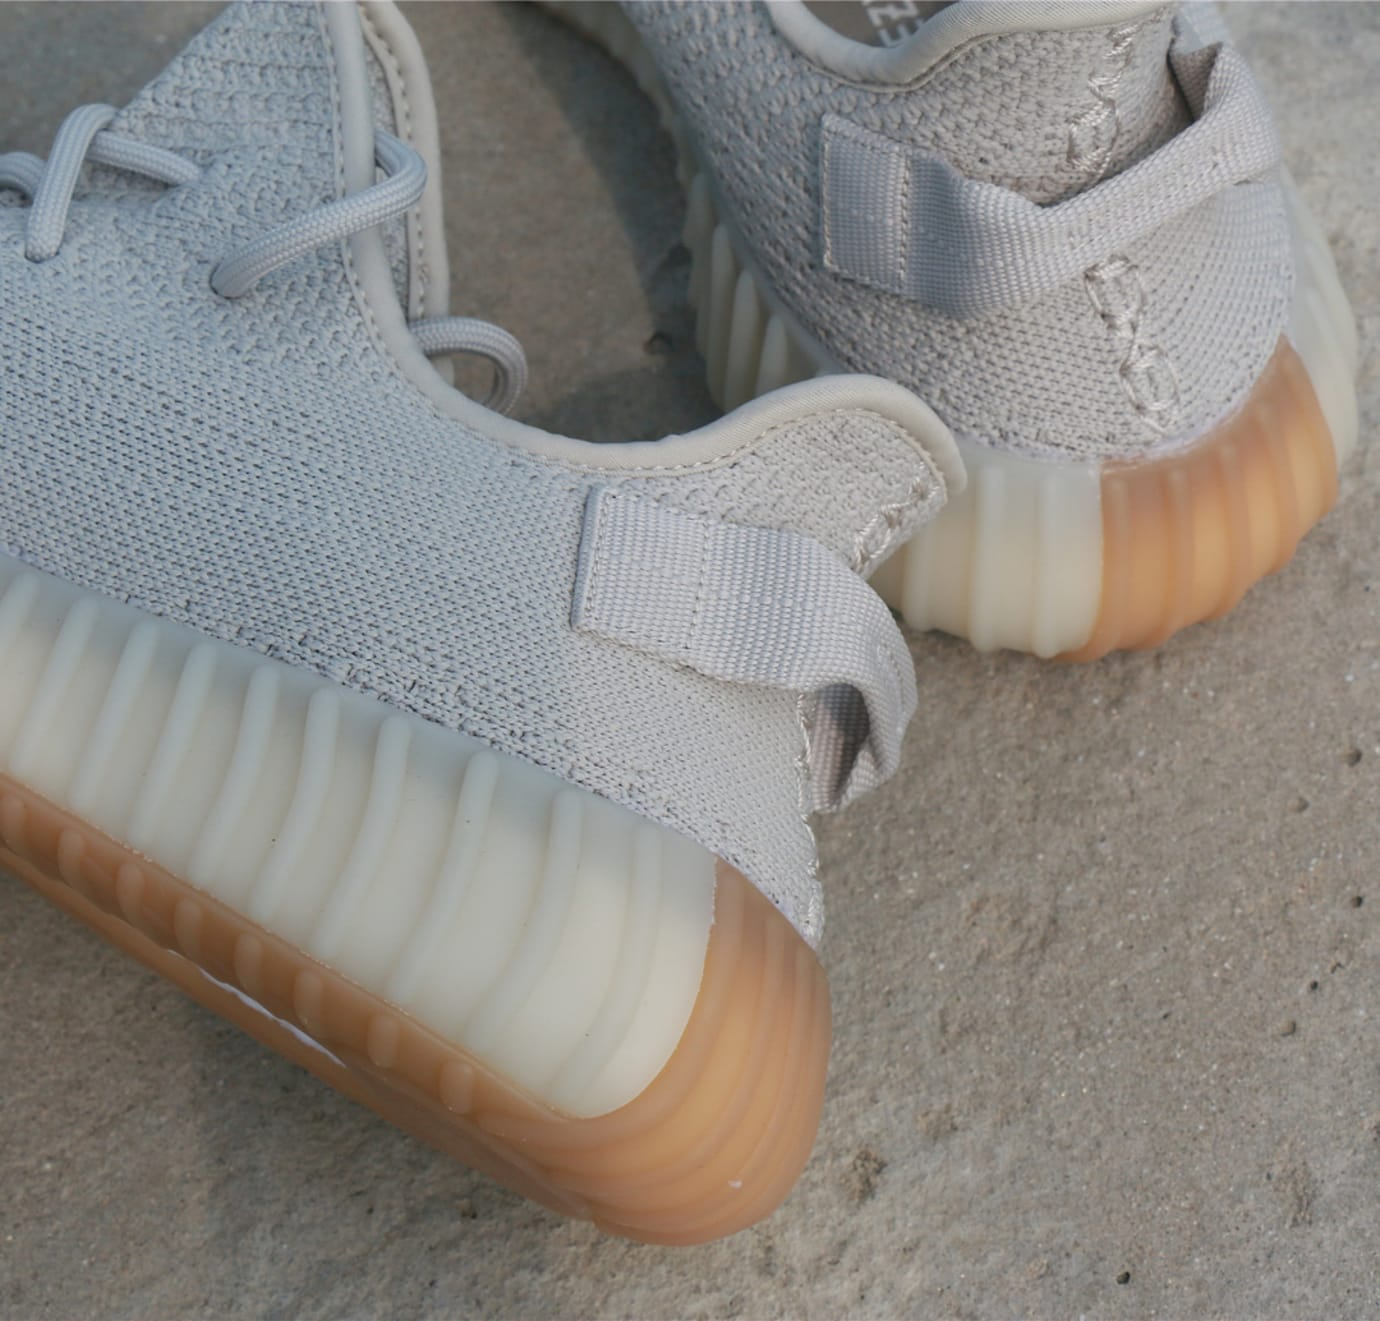 new styles a1986 6ee18 Adidas Yeezy Boost 350 V2 Sesame Release Date F99710 | Sole ...